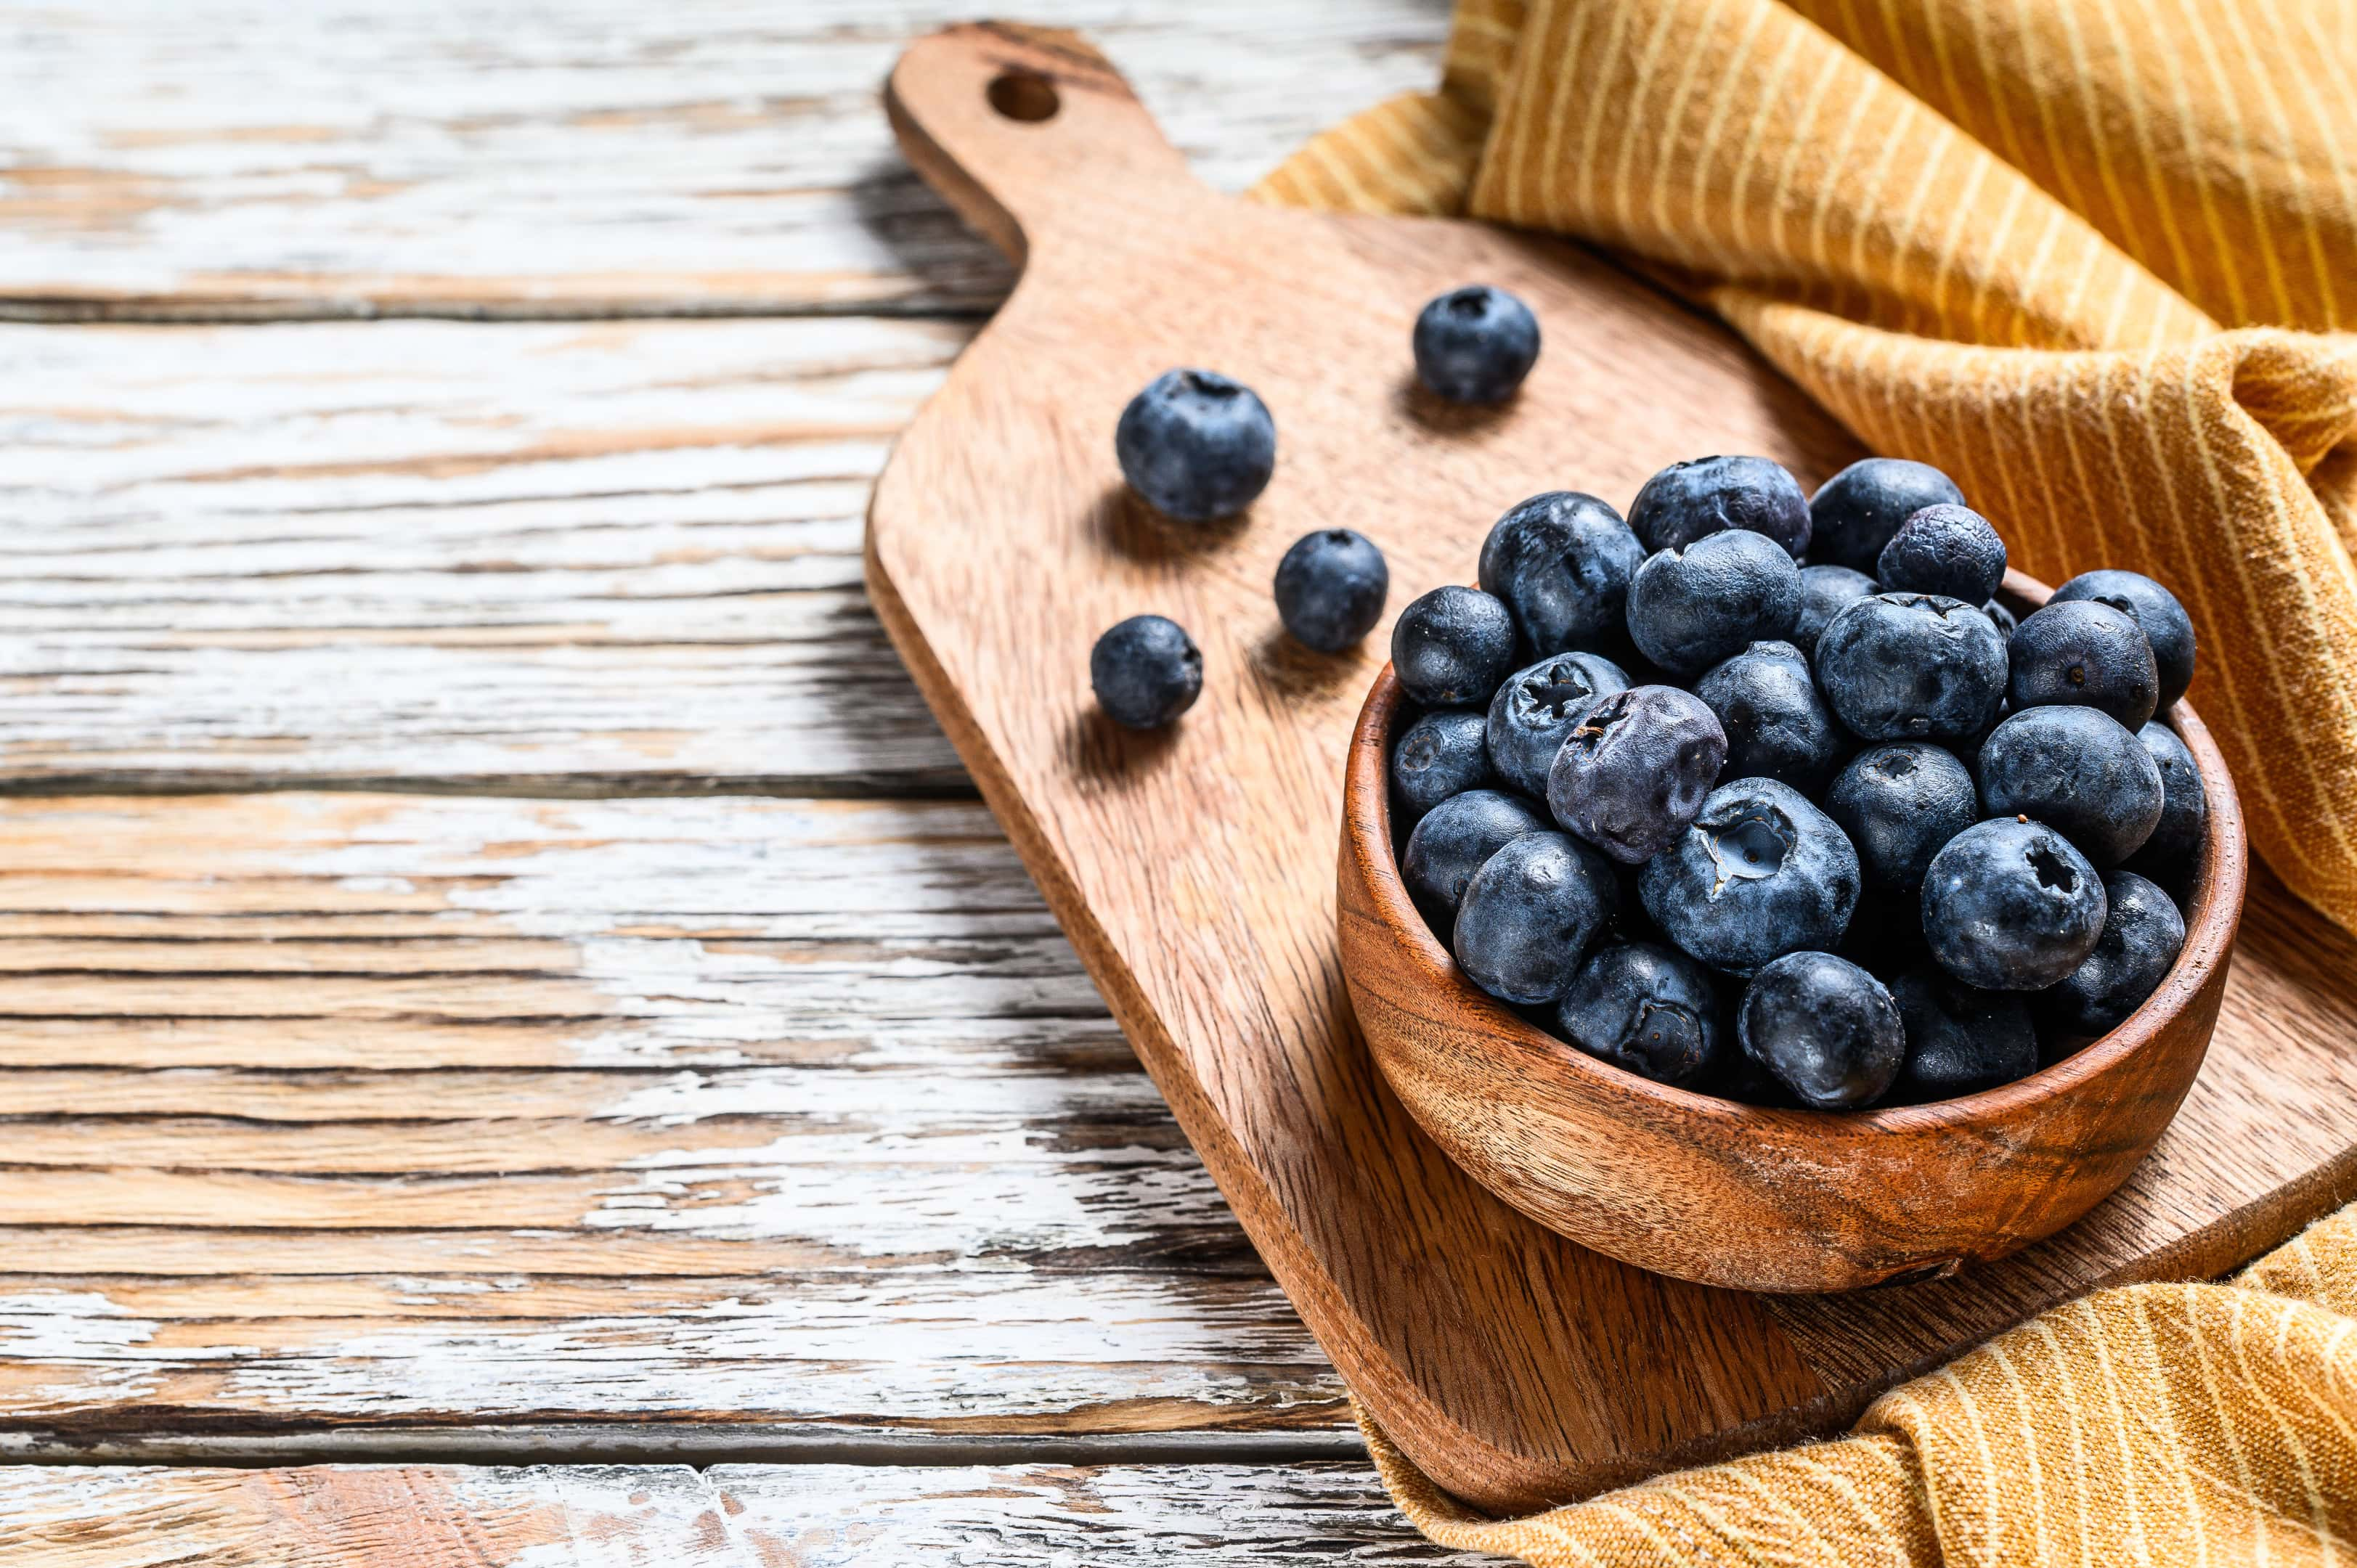 Ripe blueberries in a wooden bowl on a wooden board